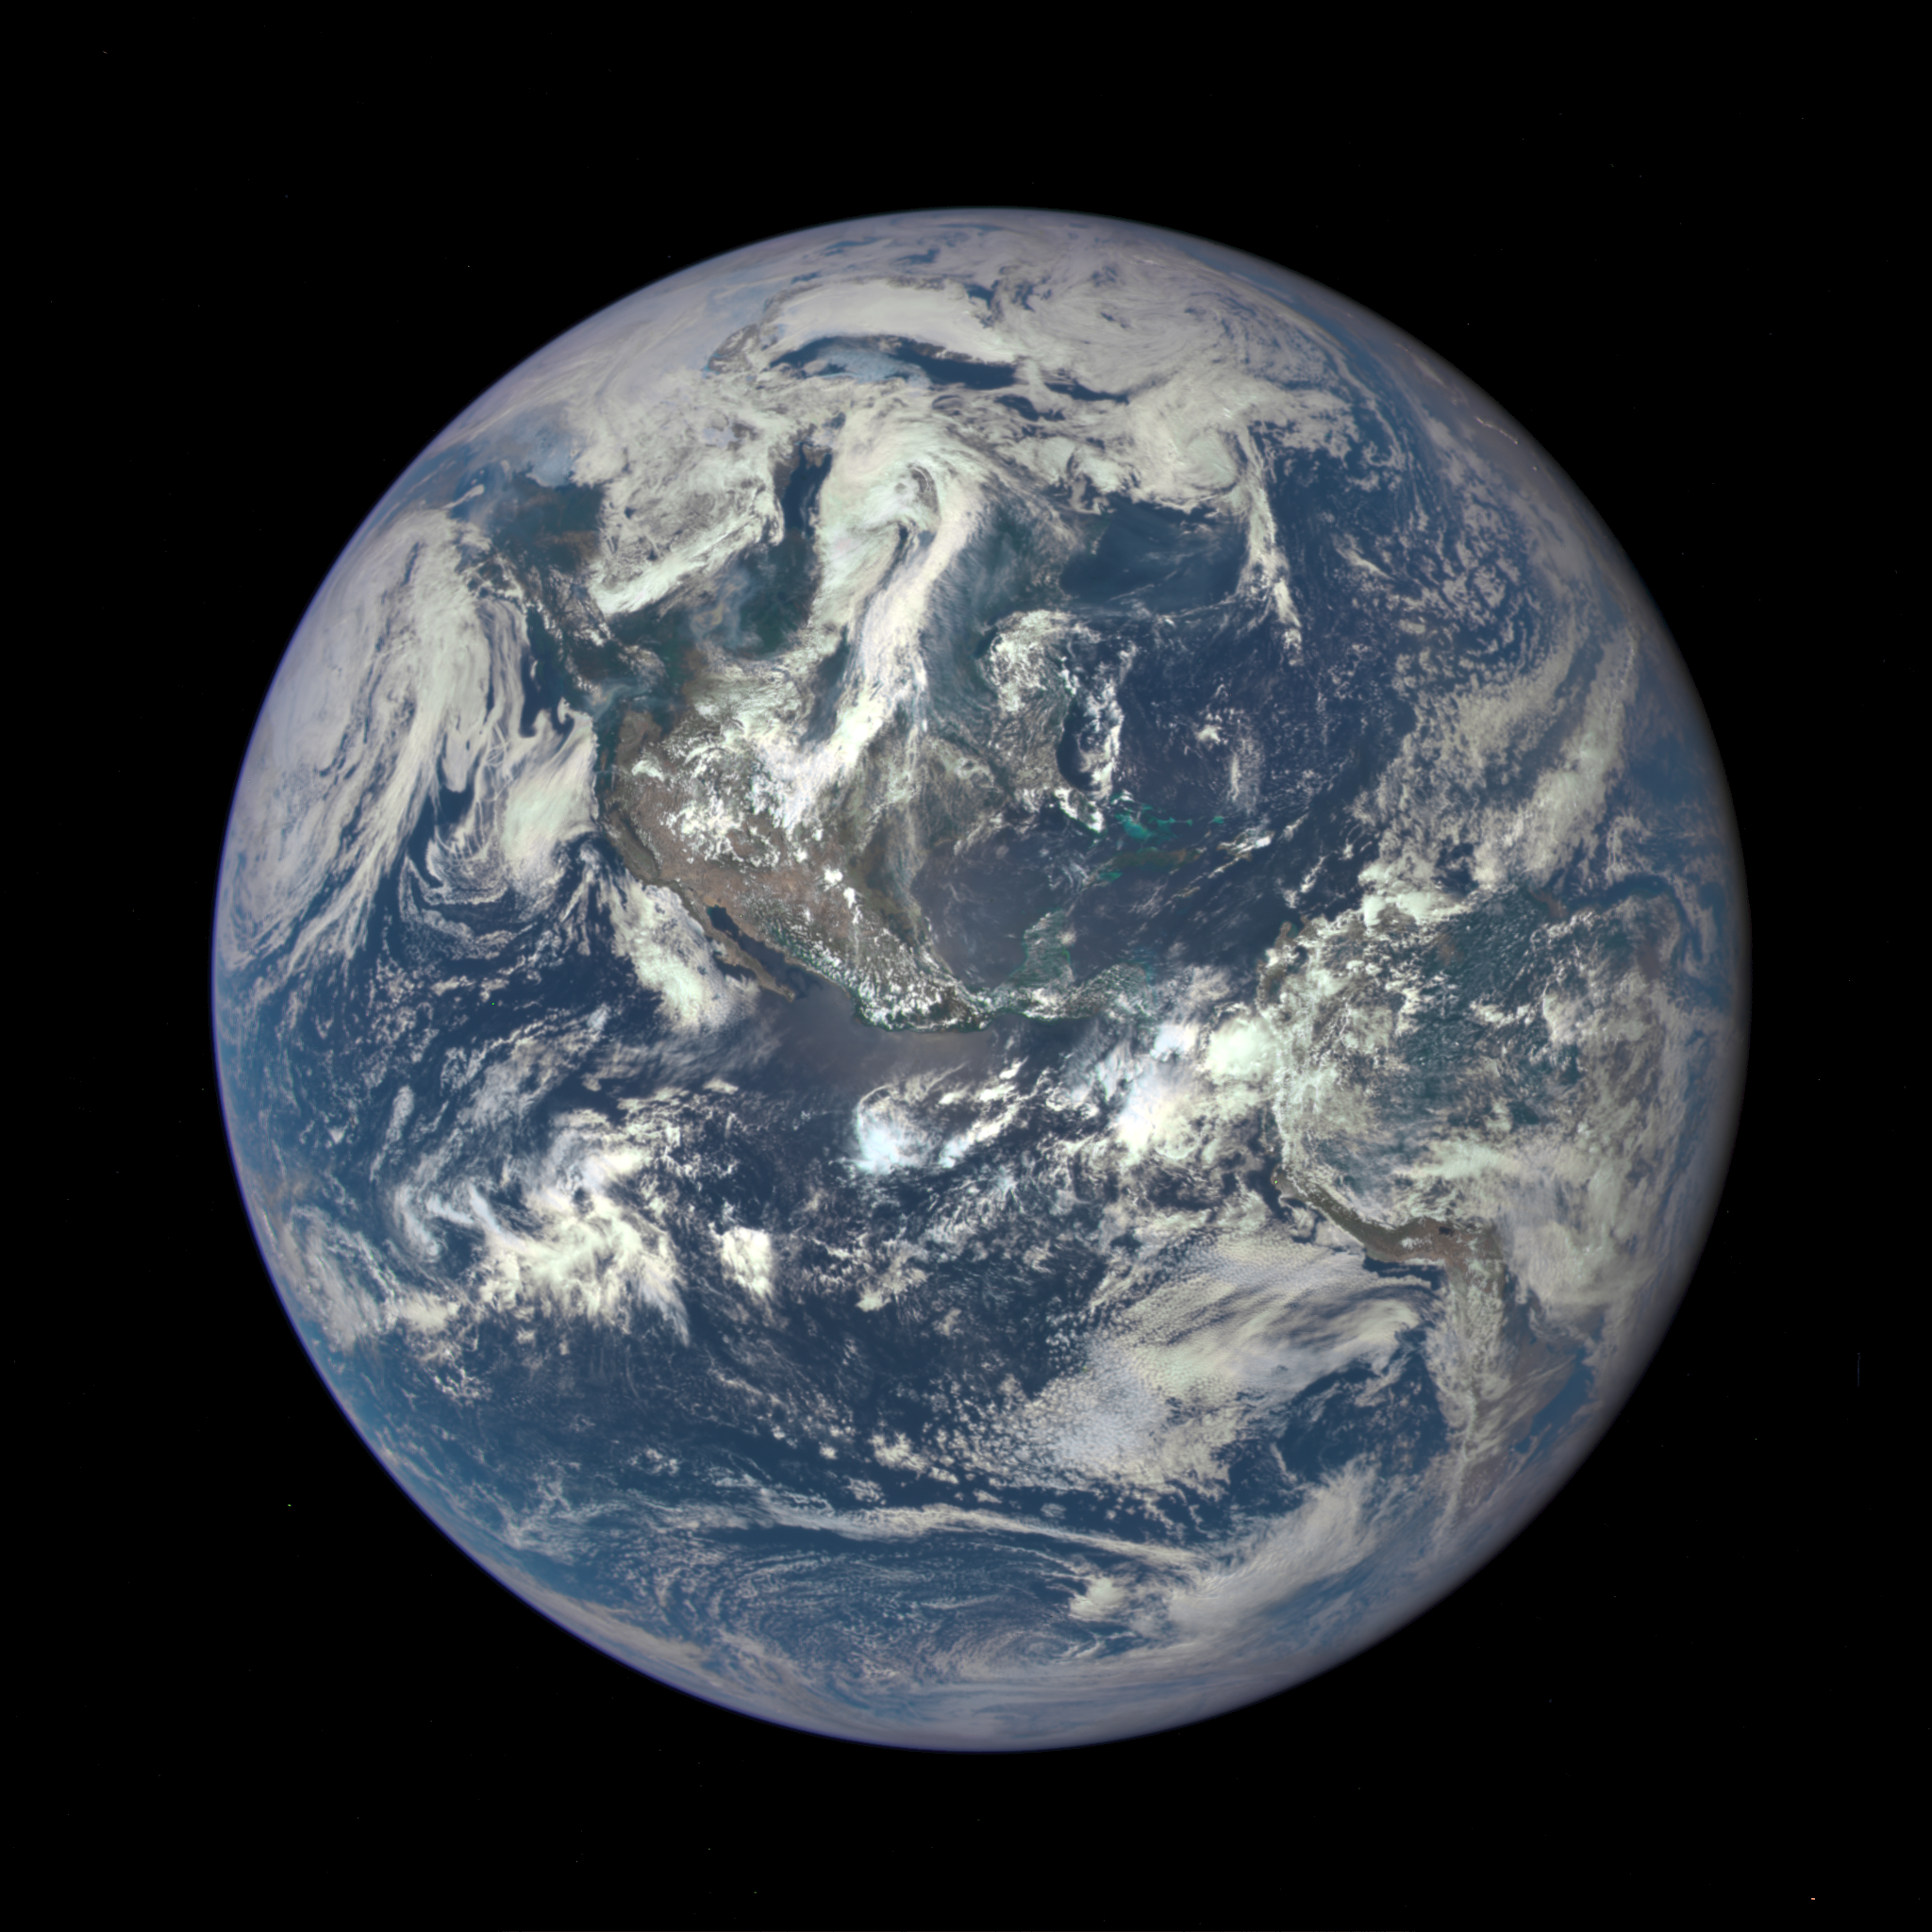 NASA Captures EPIC Earth Image NASA - Real life satellite view